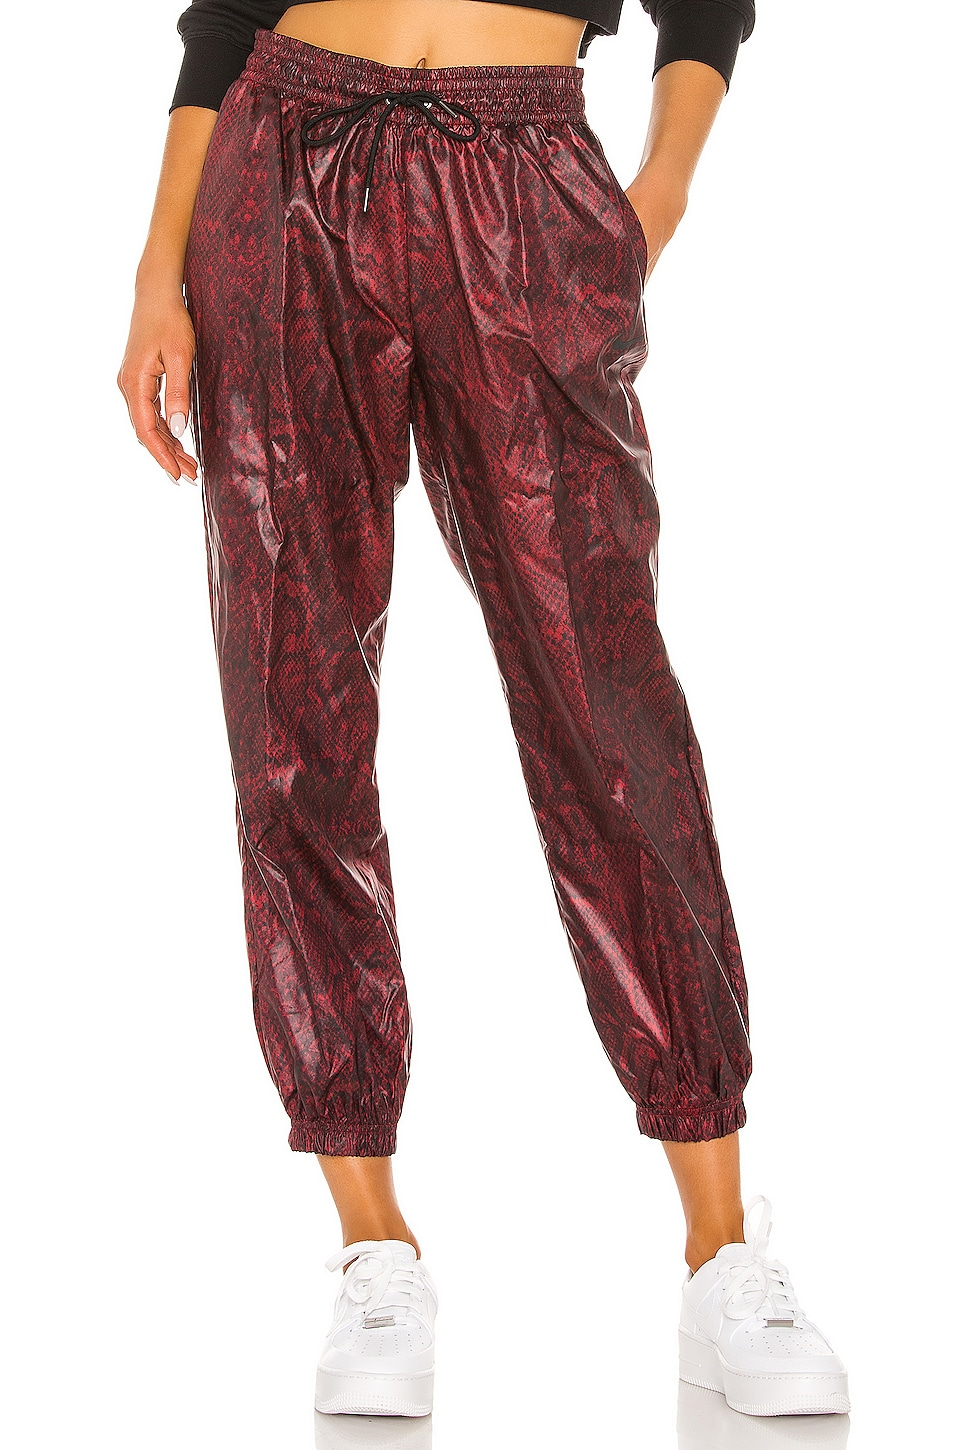 Nike Python Pant in Team Red